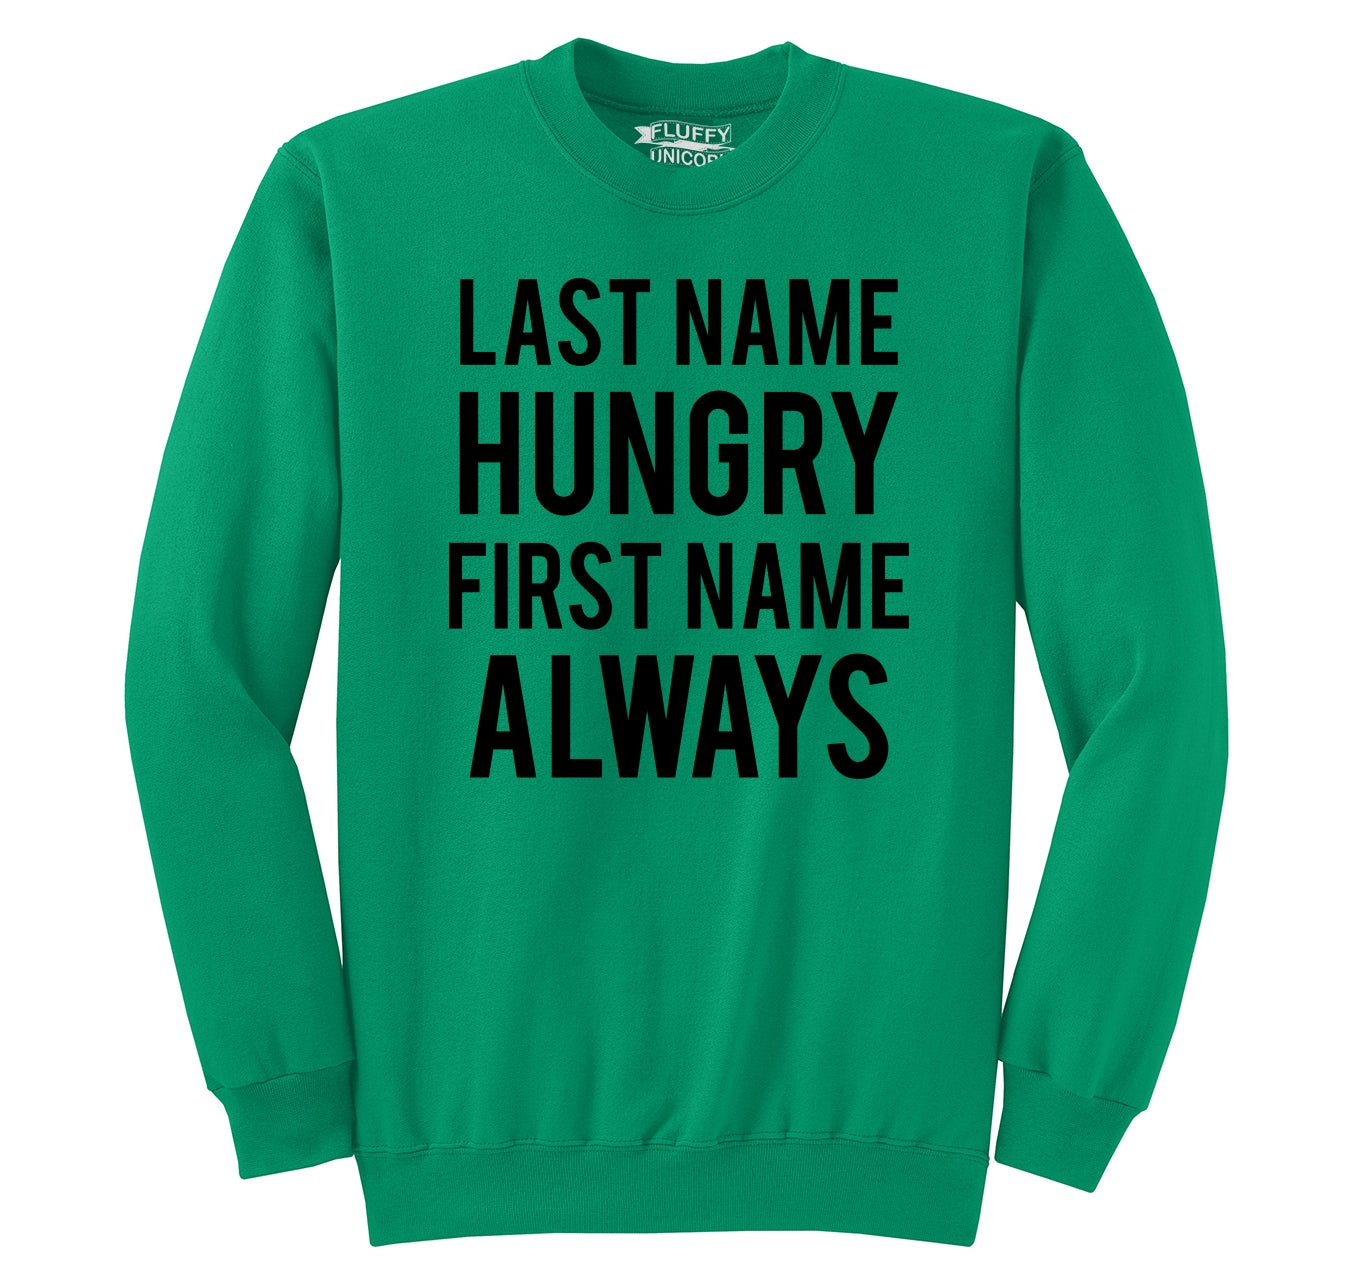 872acd38a Last Name Hungry First Name Always Crewneck Sweatshirt – Comical Shirt